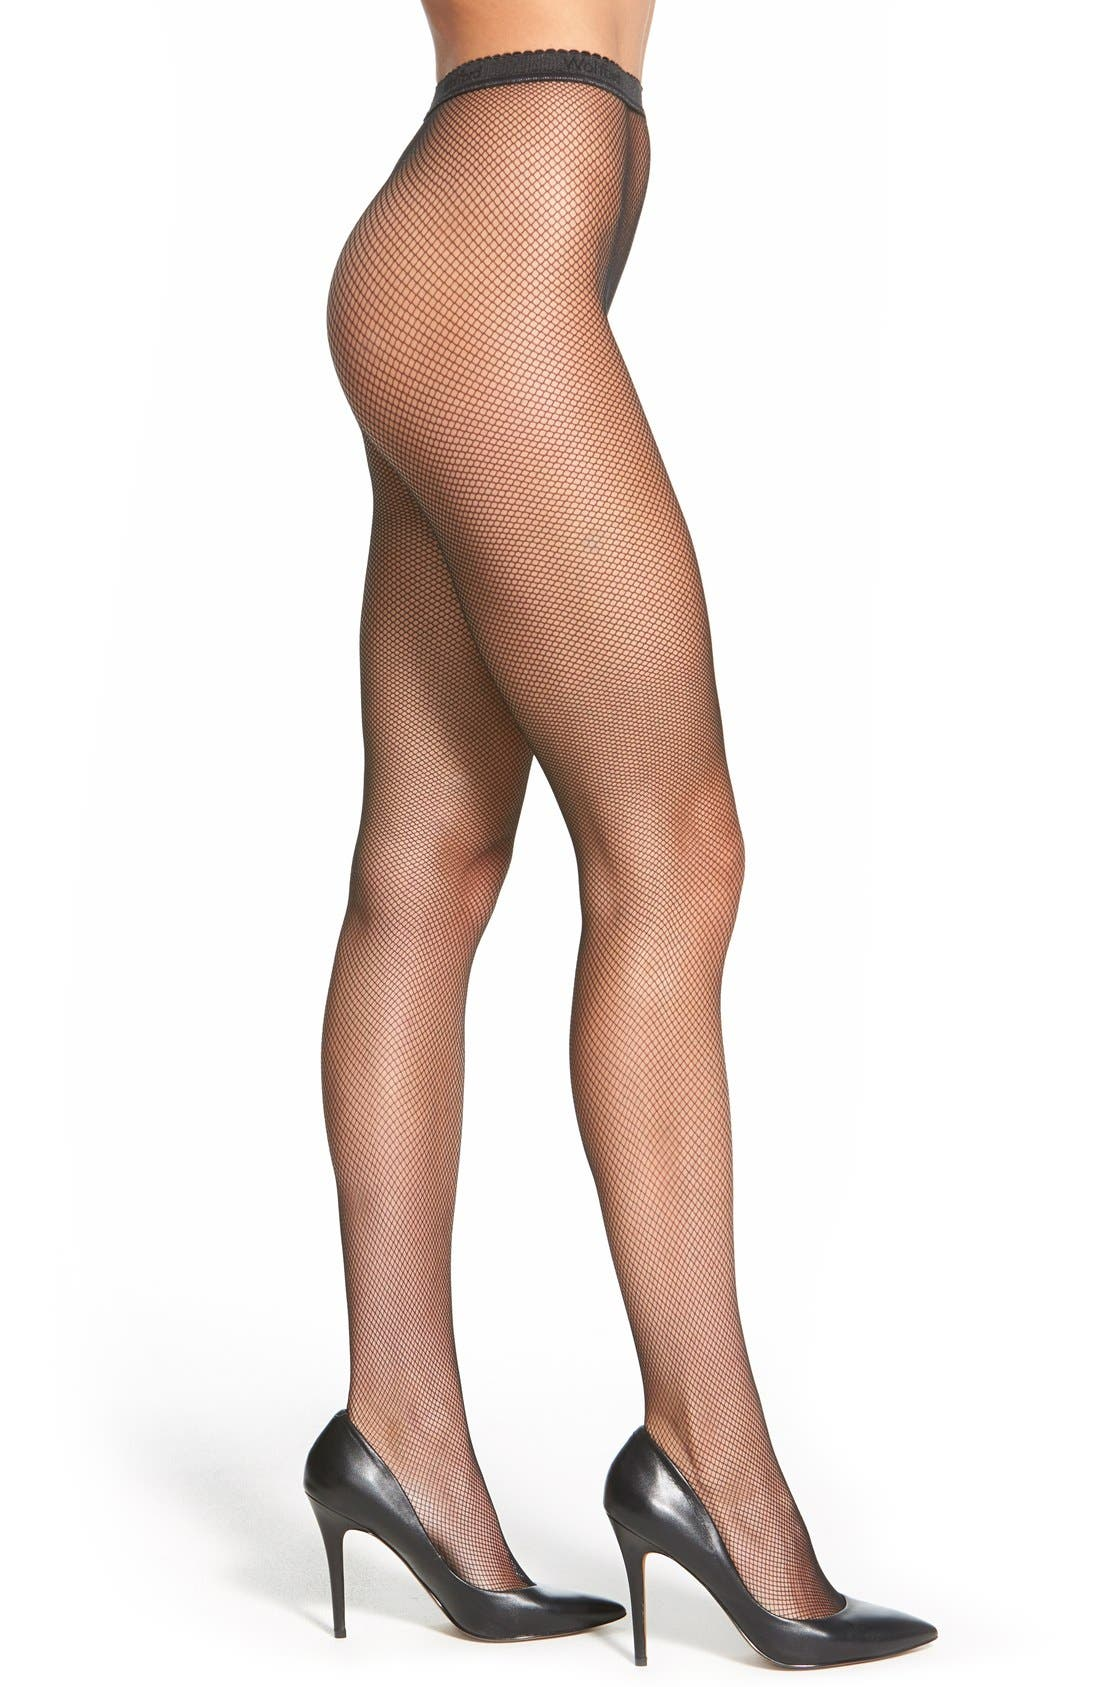 Wolford 'Twenties' Fishnet Tights